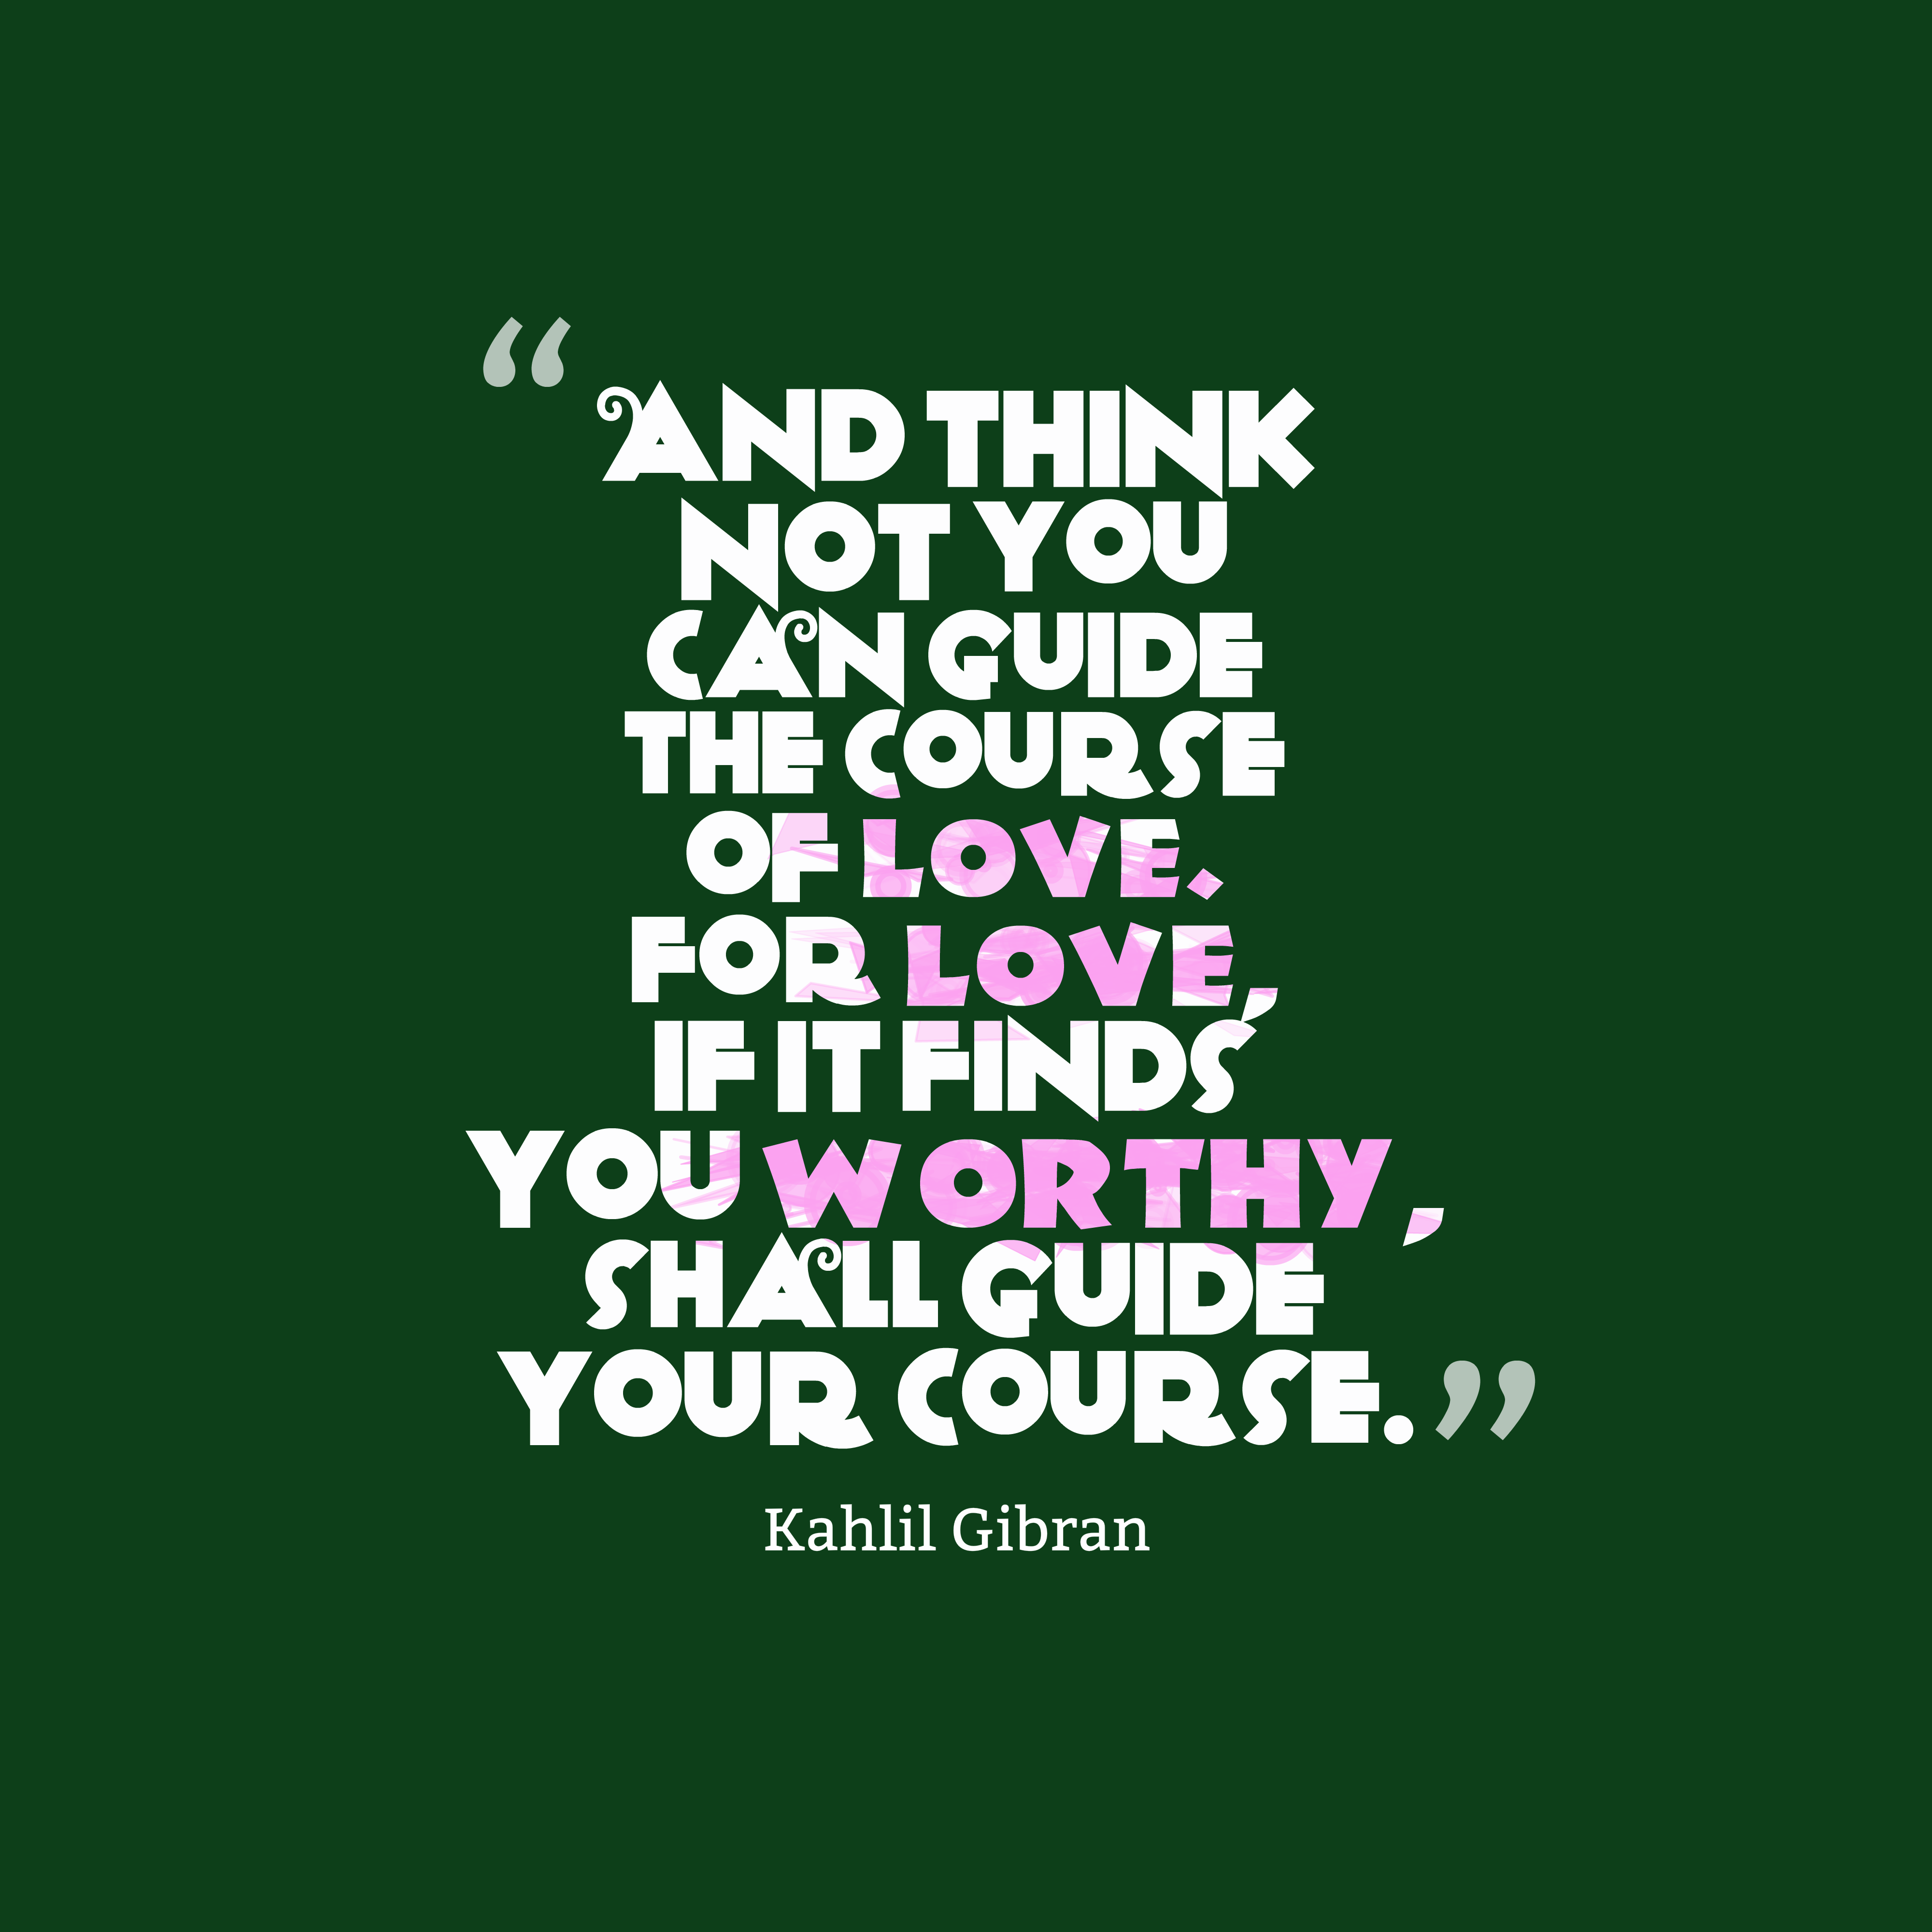 Quotes About Love: Kahlil Gibran Quote About Love